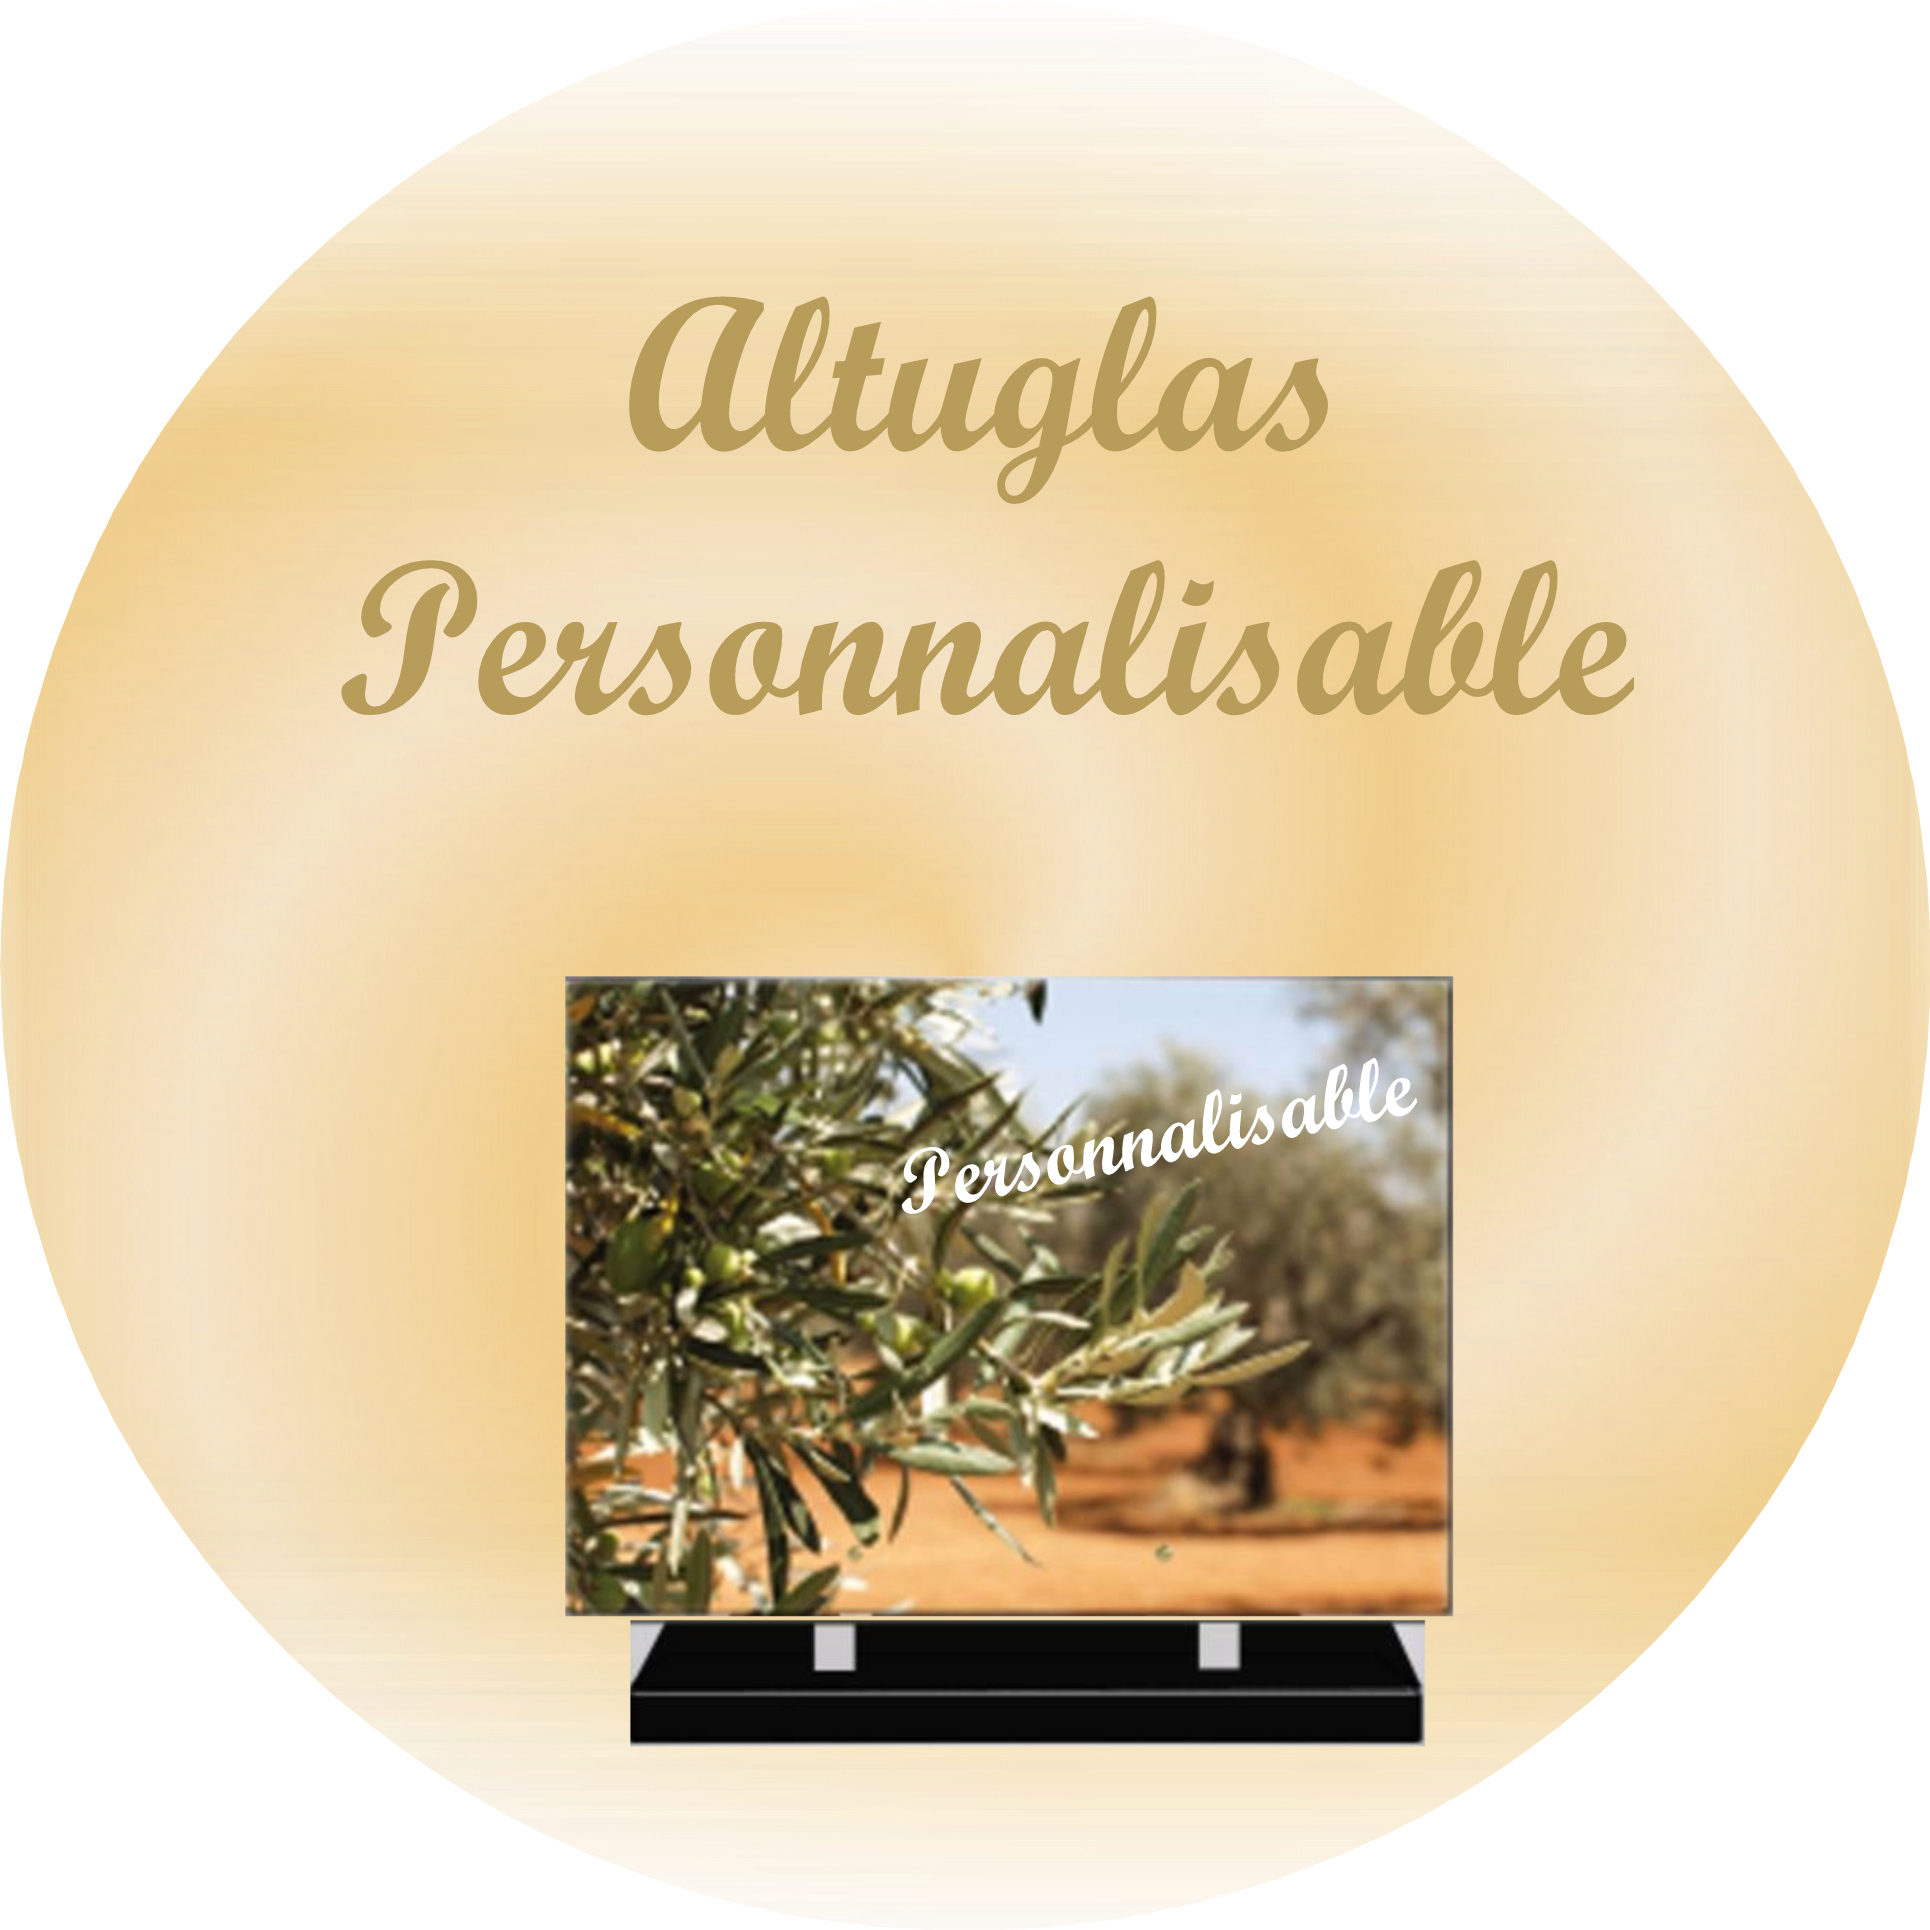 PLAQUES FUNERAIRES MODERNES PERSONNALISABLES RECTANGLE ARANC